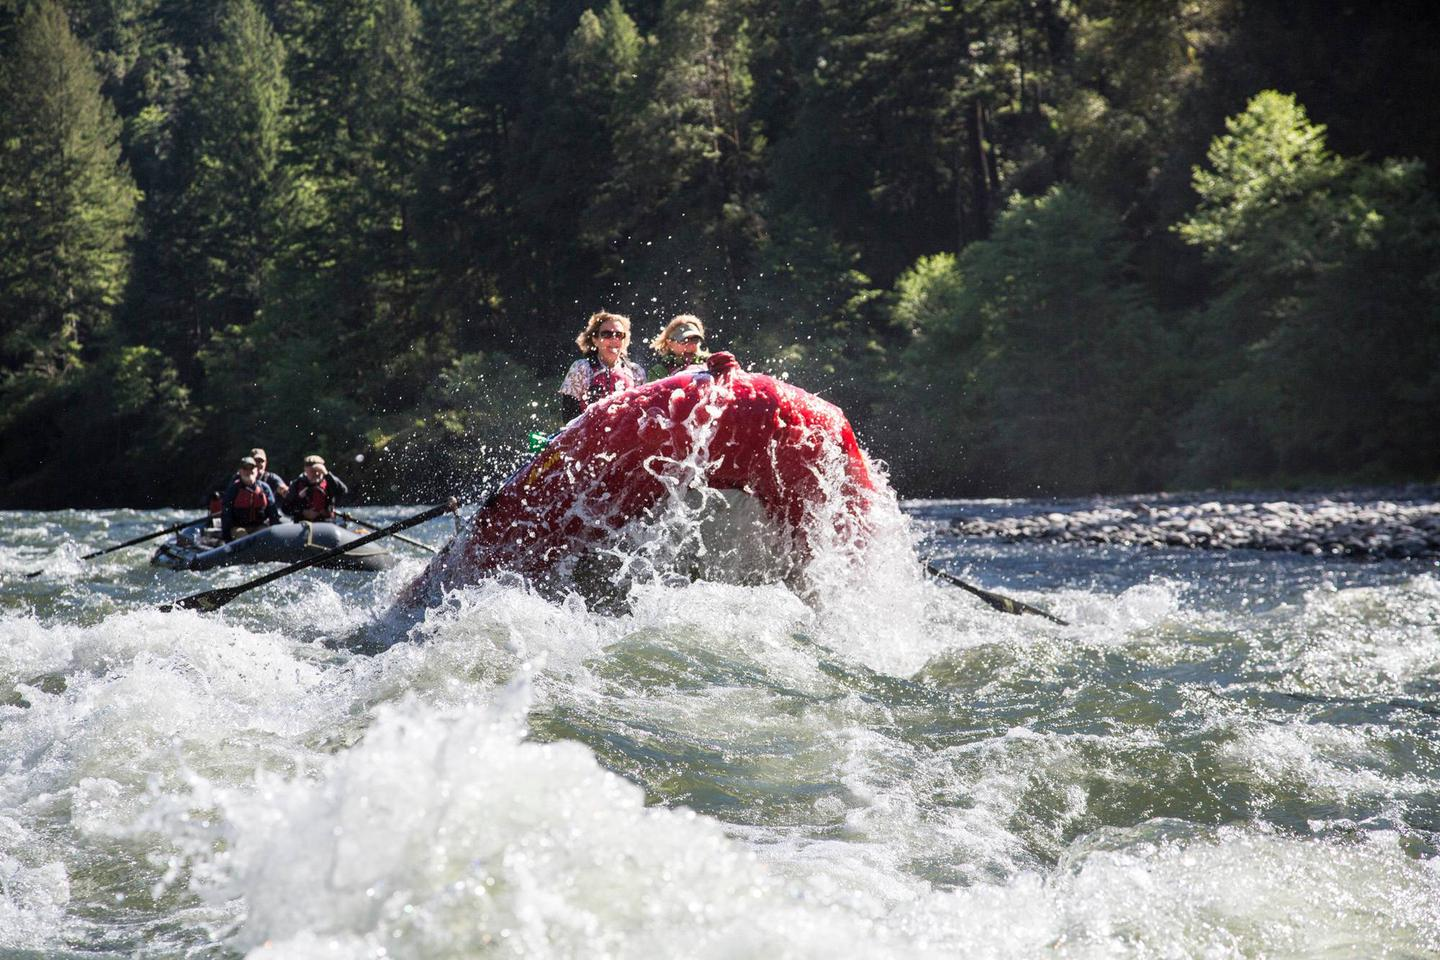 Passengers smile as the nose of their raft leaps upward going through whitewater.Whitewater on the Rogue Wild & Scenic River.